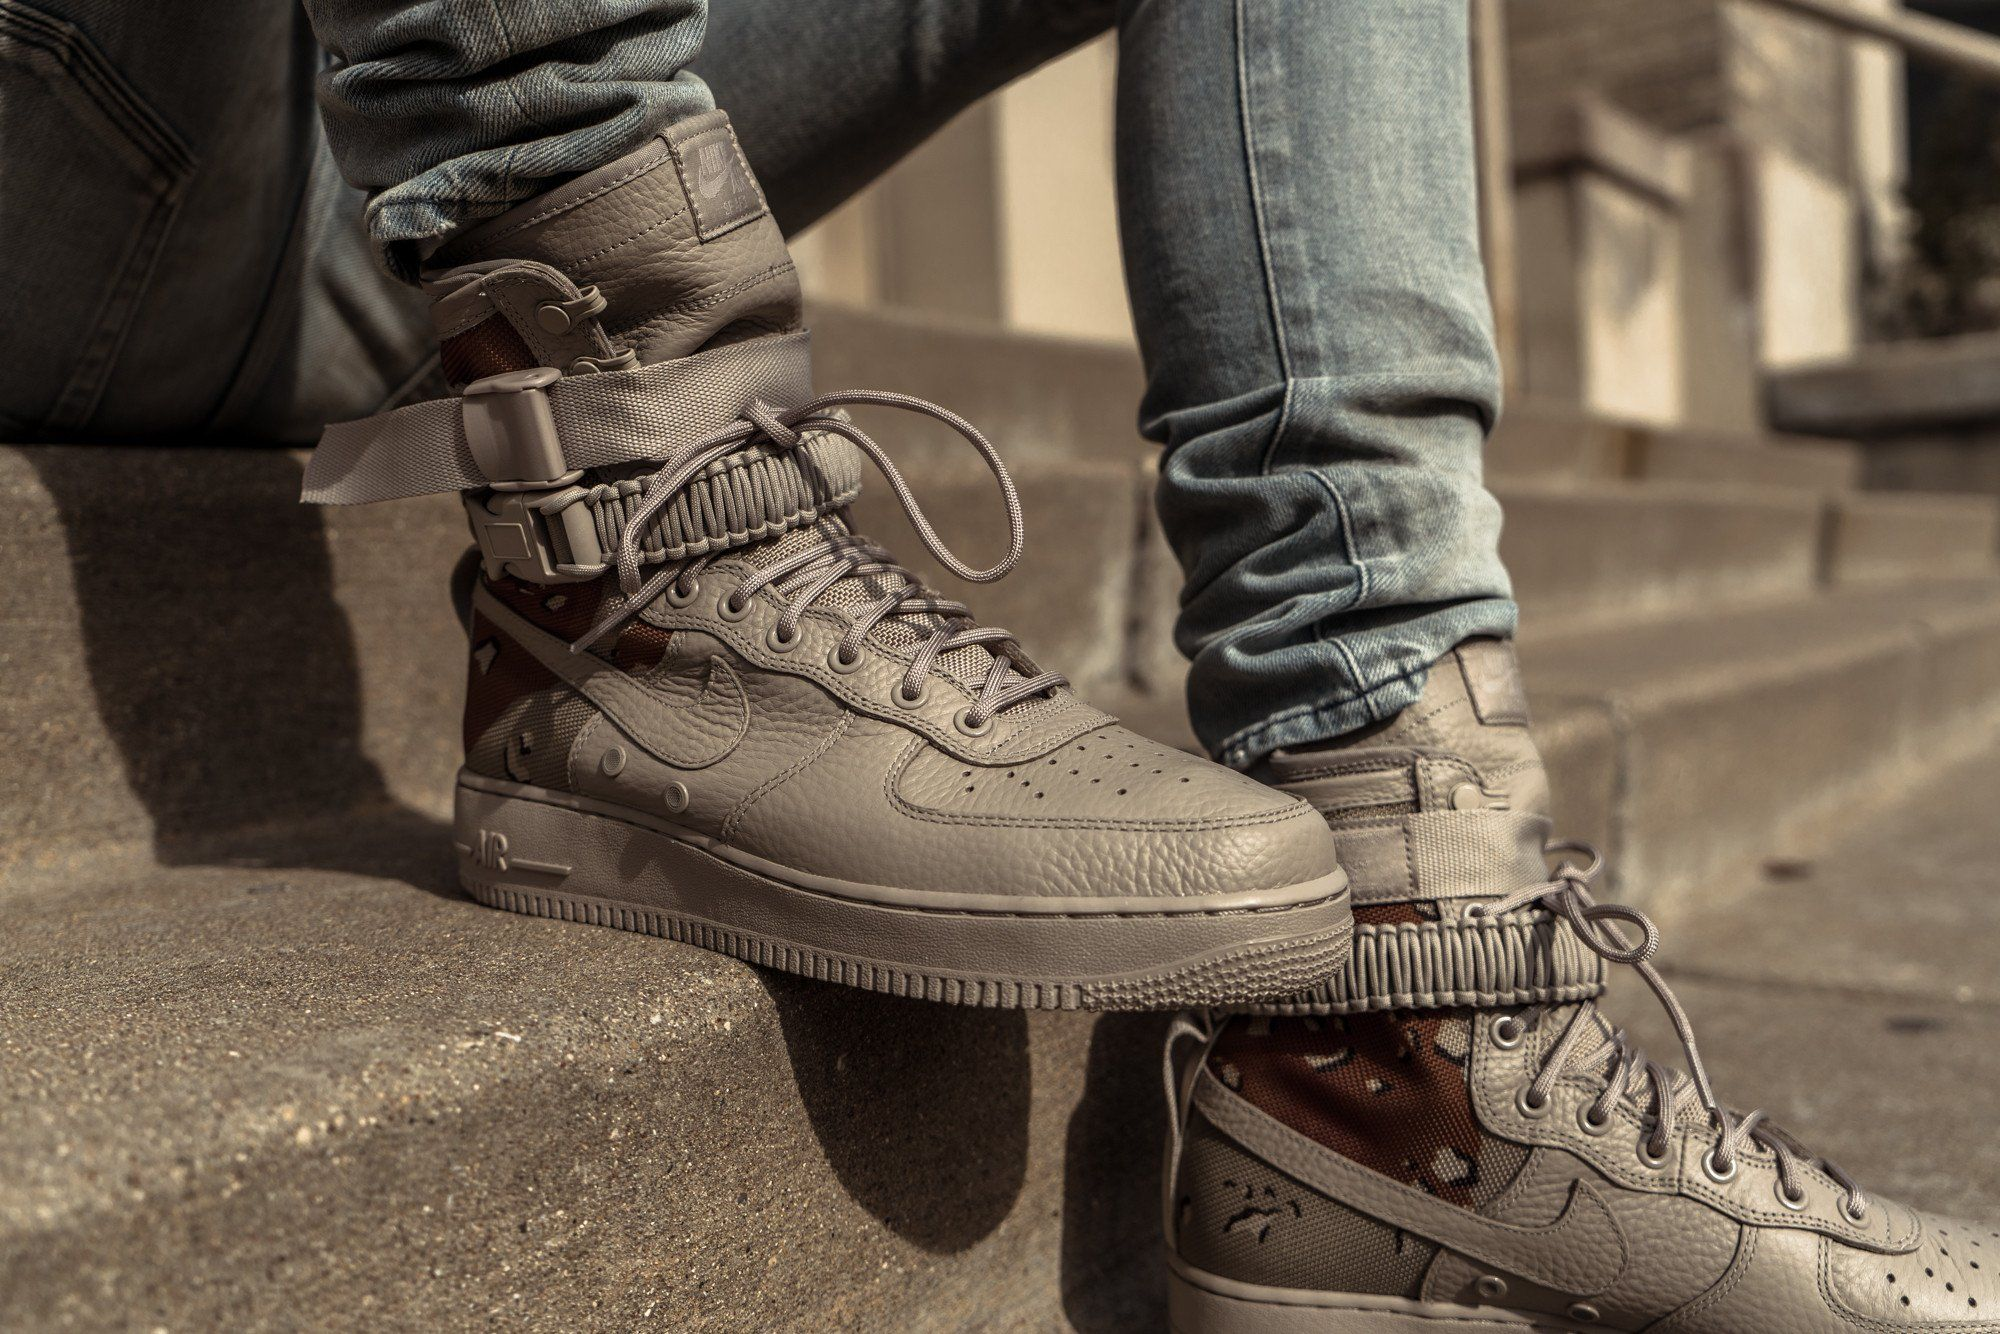 Nike Special Field Air Force 1 Desert Camo Nike Sf Af1 Desert Camo Boots